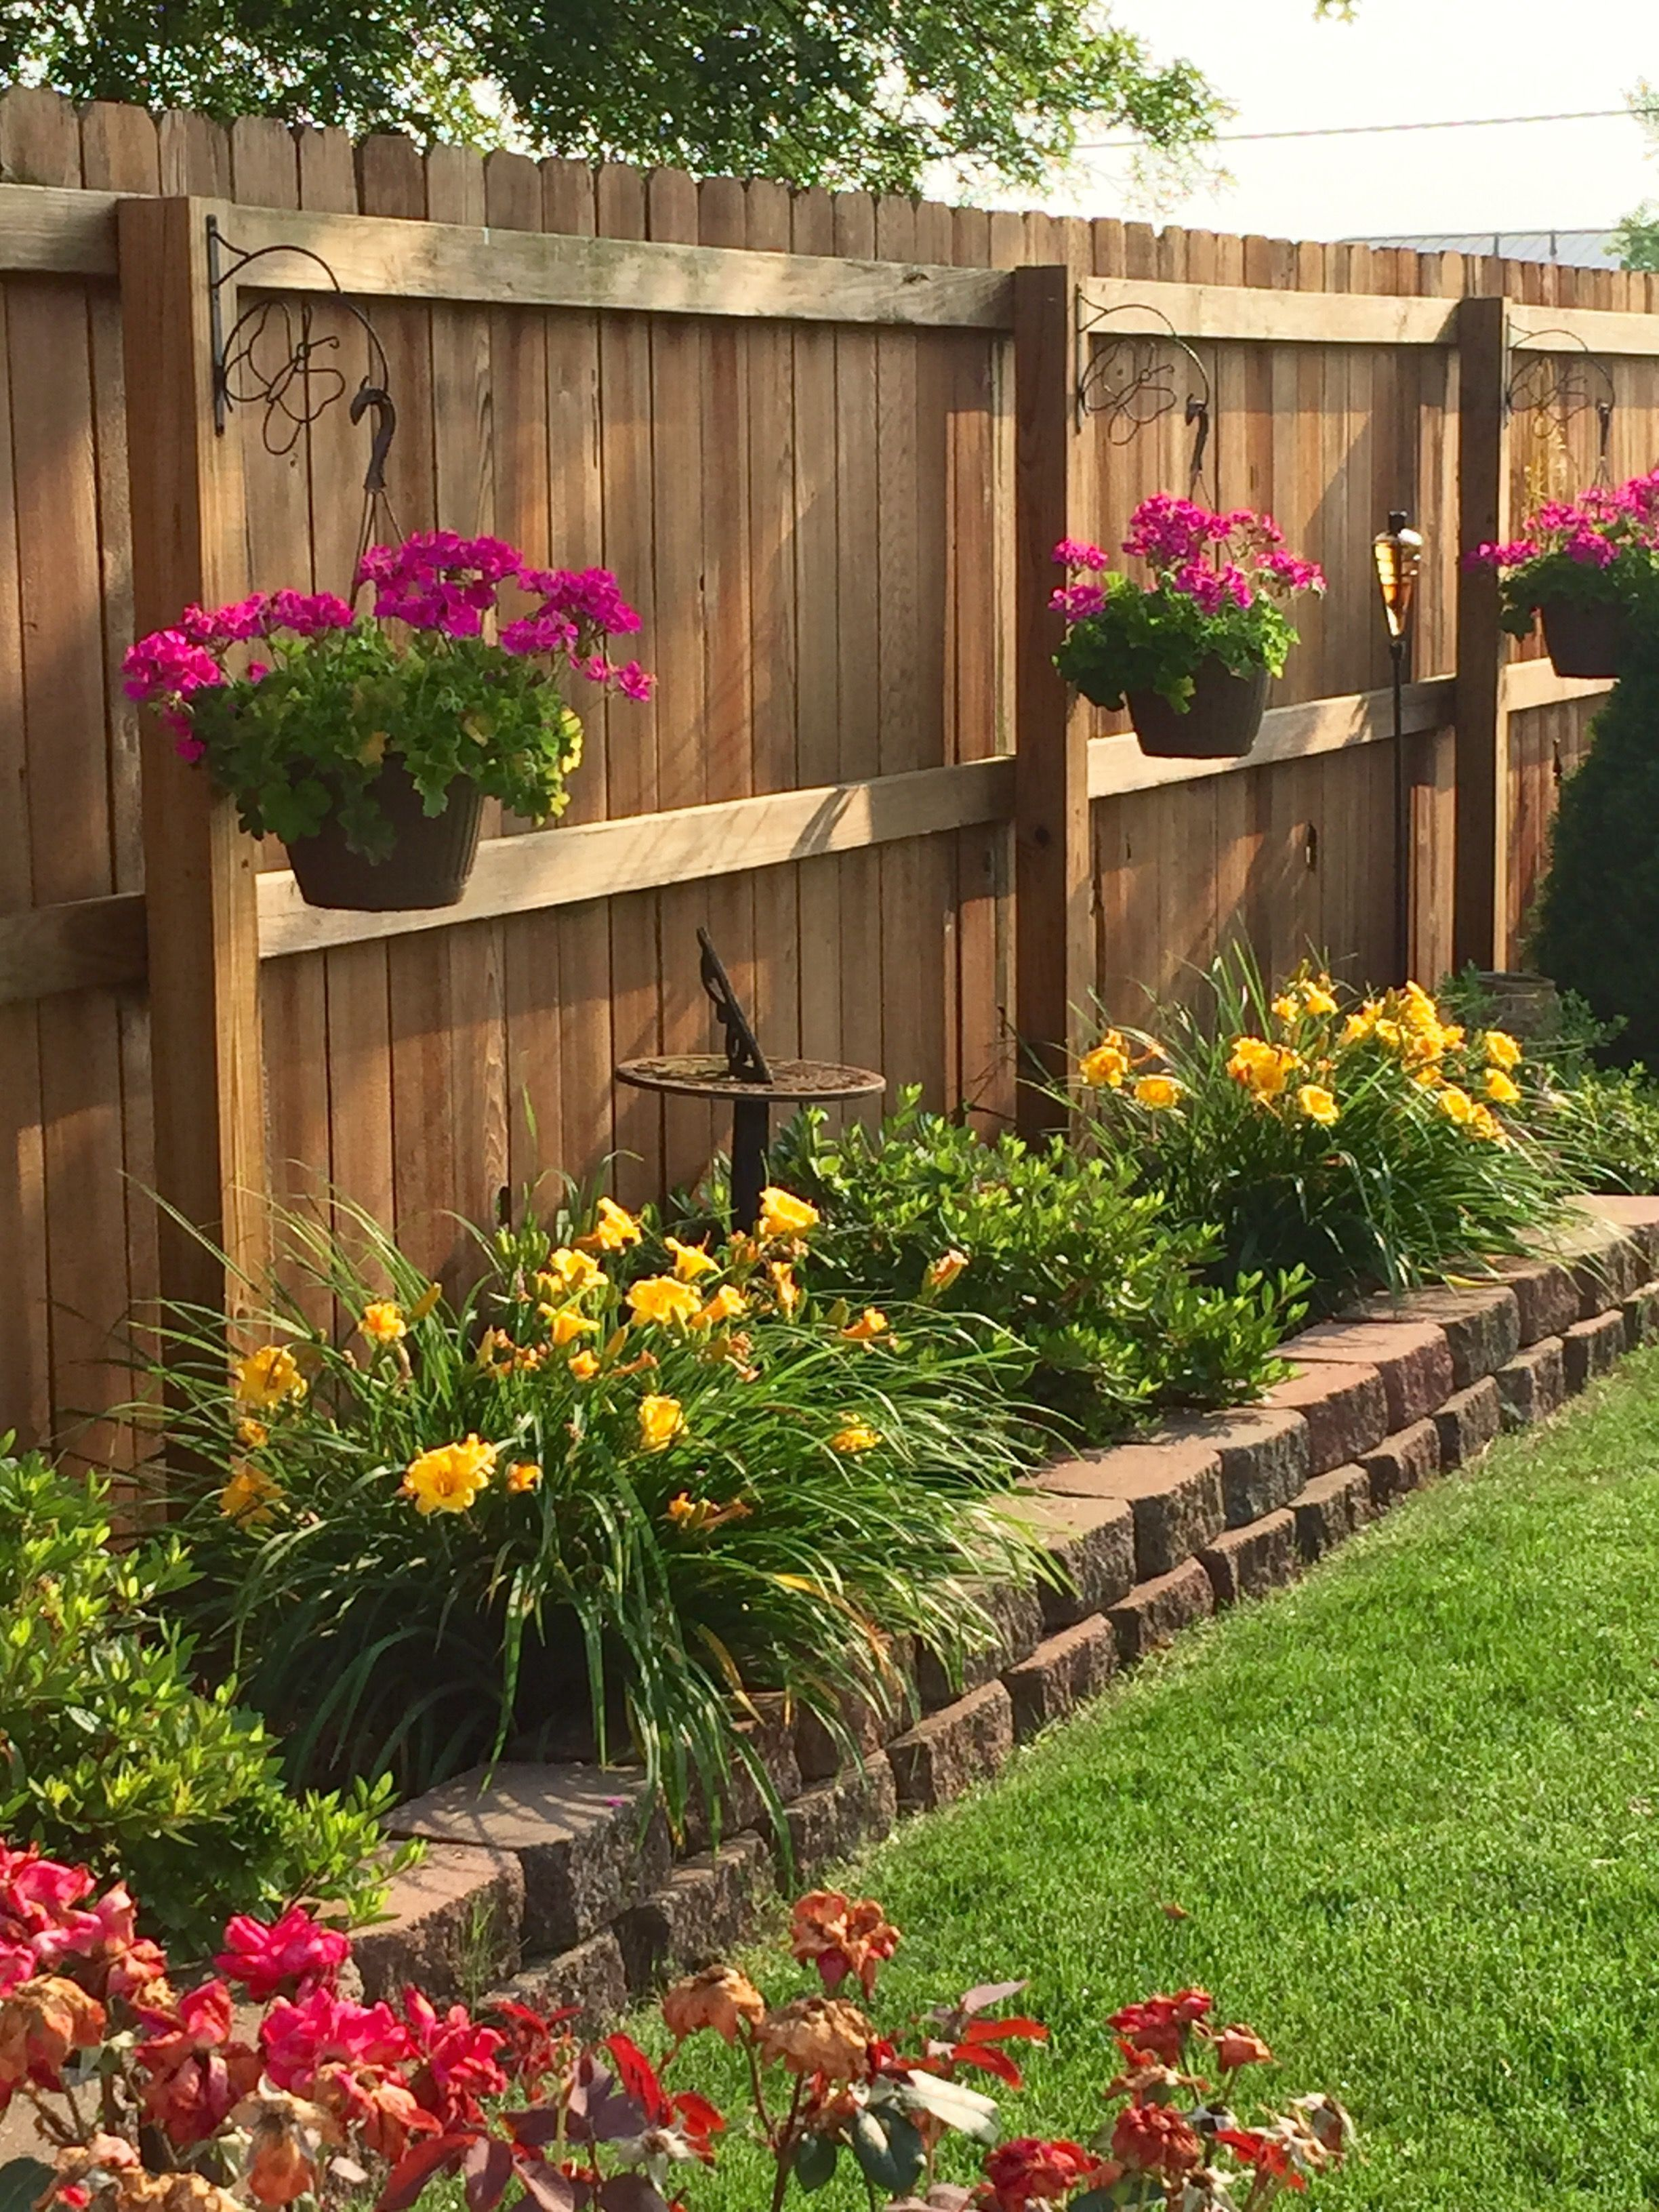 Backyard Landscaping Ideas Decor Around The World In 2020 Inexpensive Backyard Ideas Small Backyard Gardens Small Front Yard Landscaping